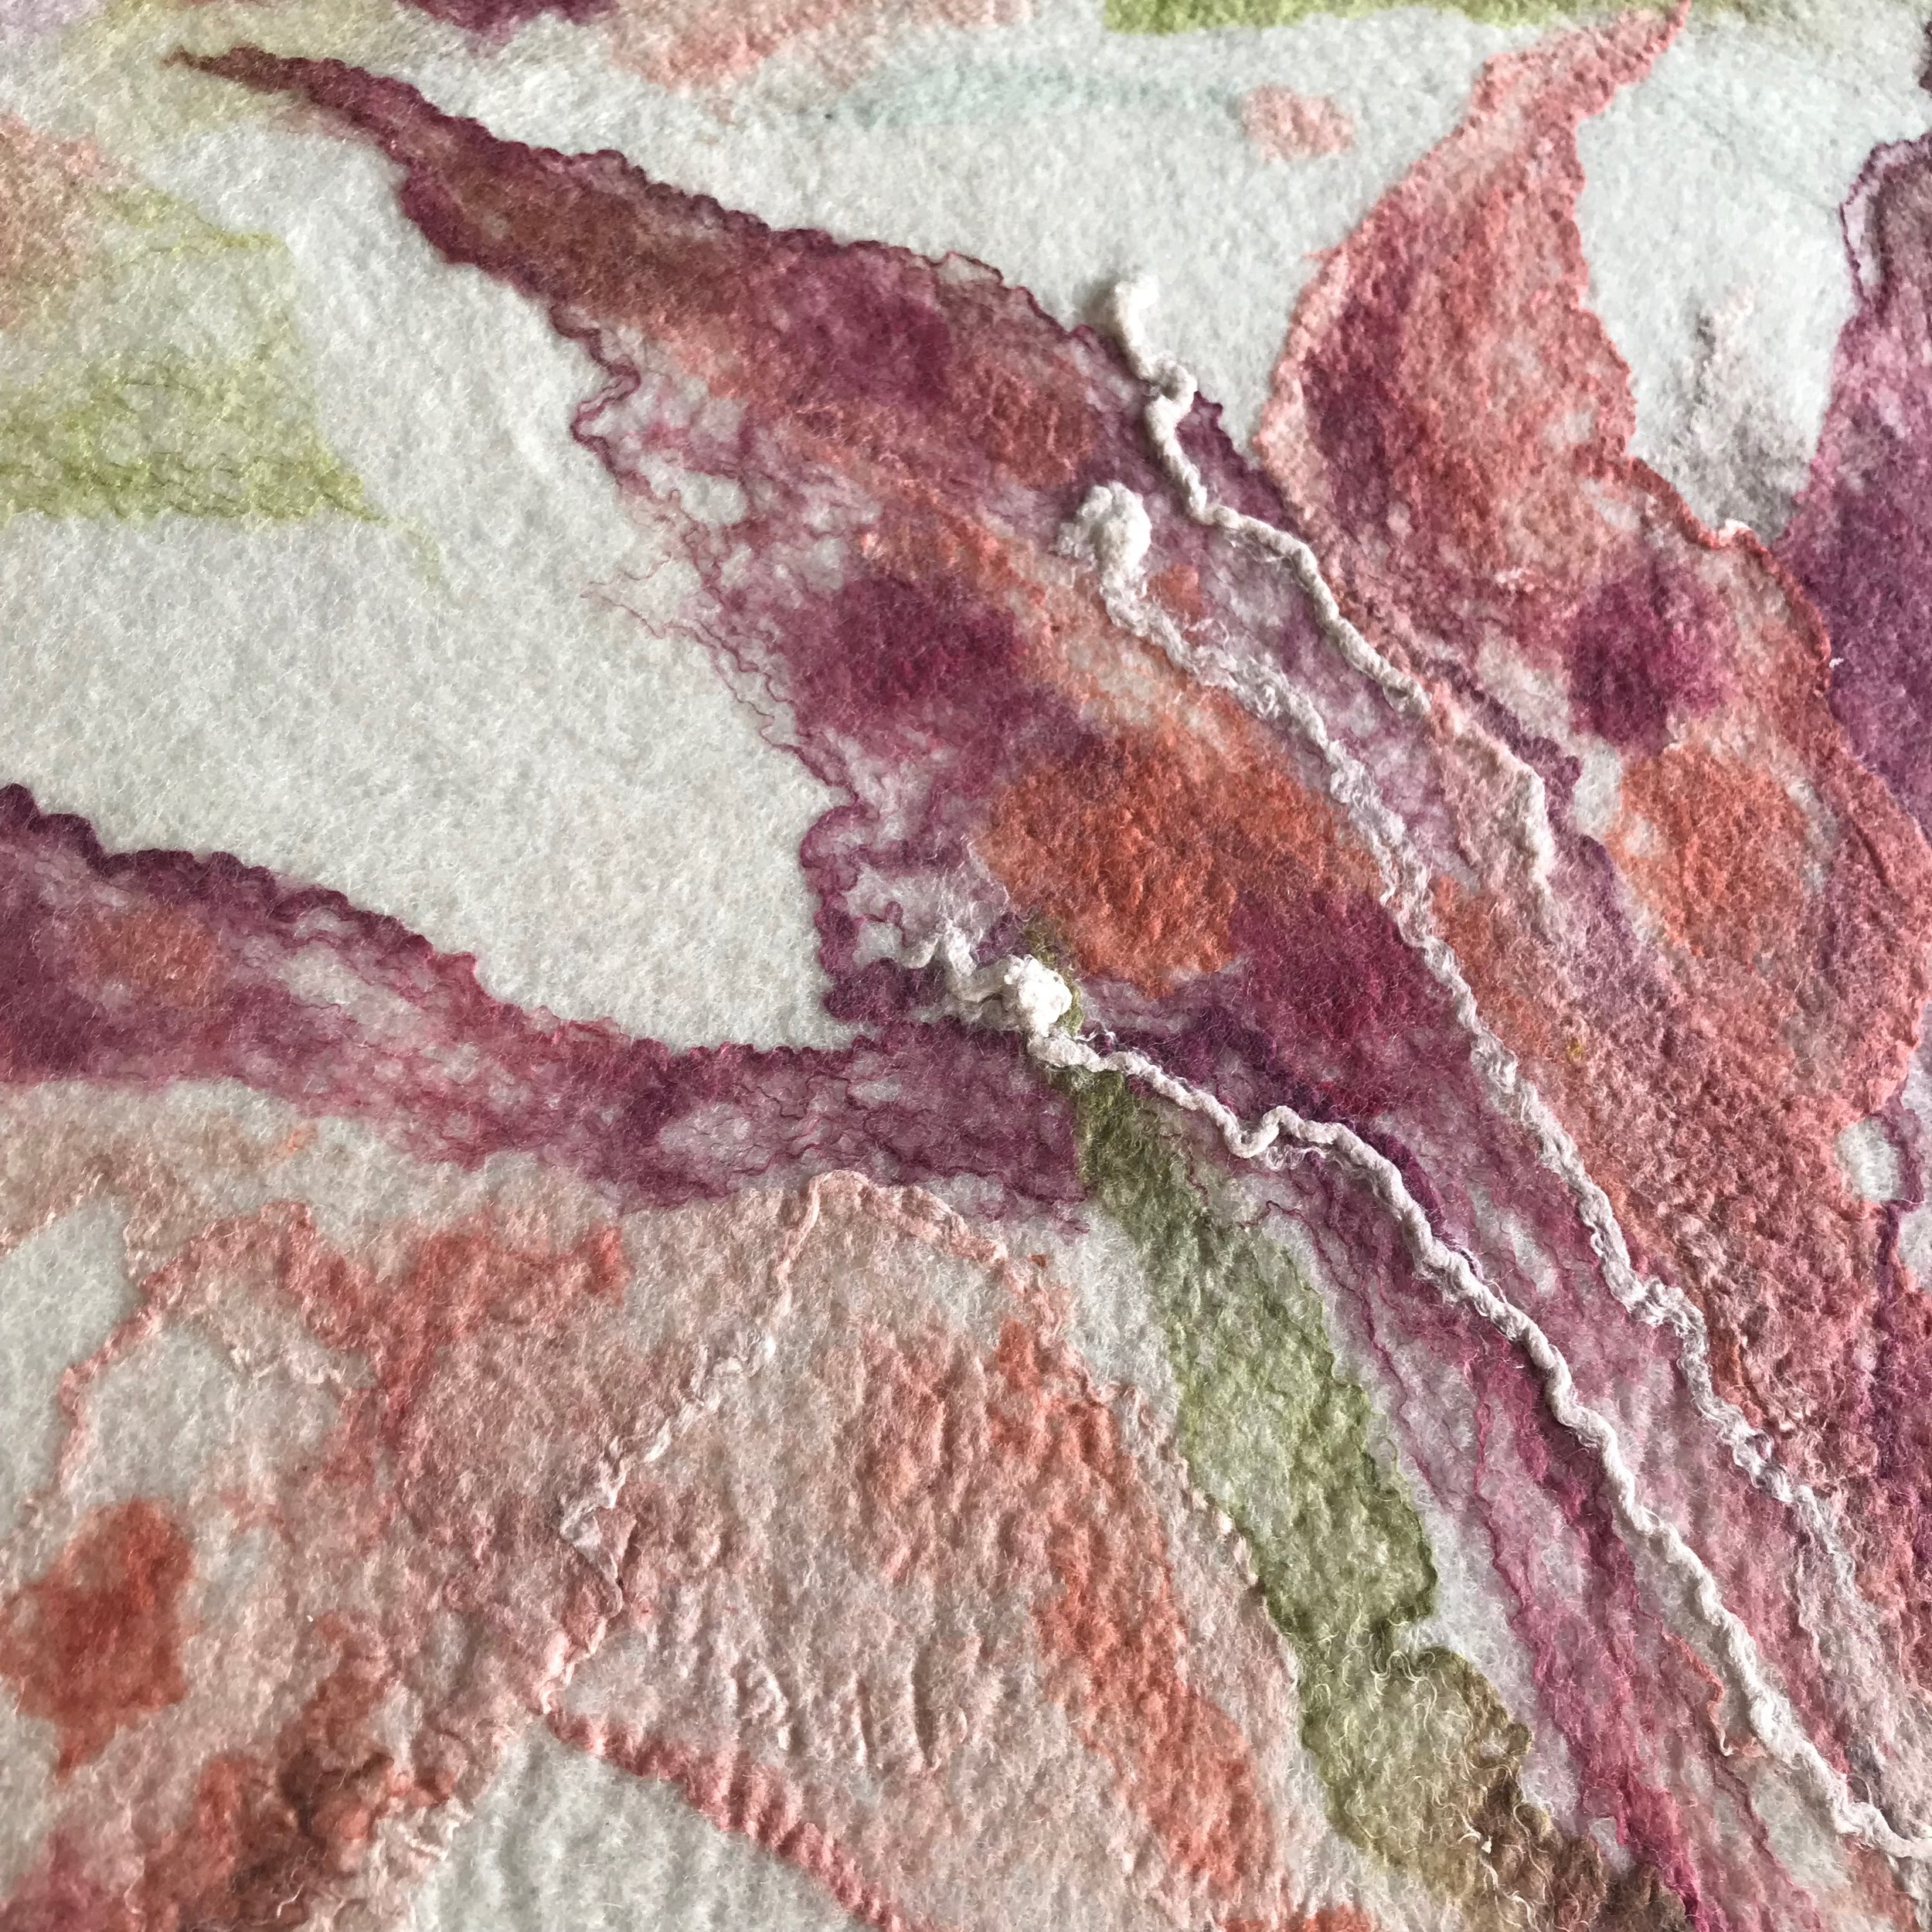 Felted artwork isn't any more difficult to care for than other painted mediums.